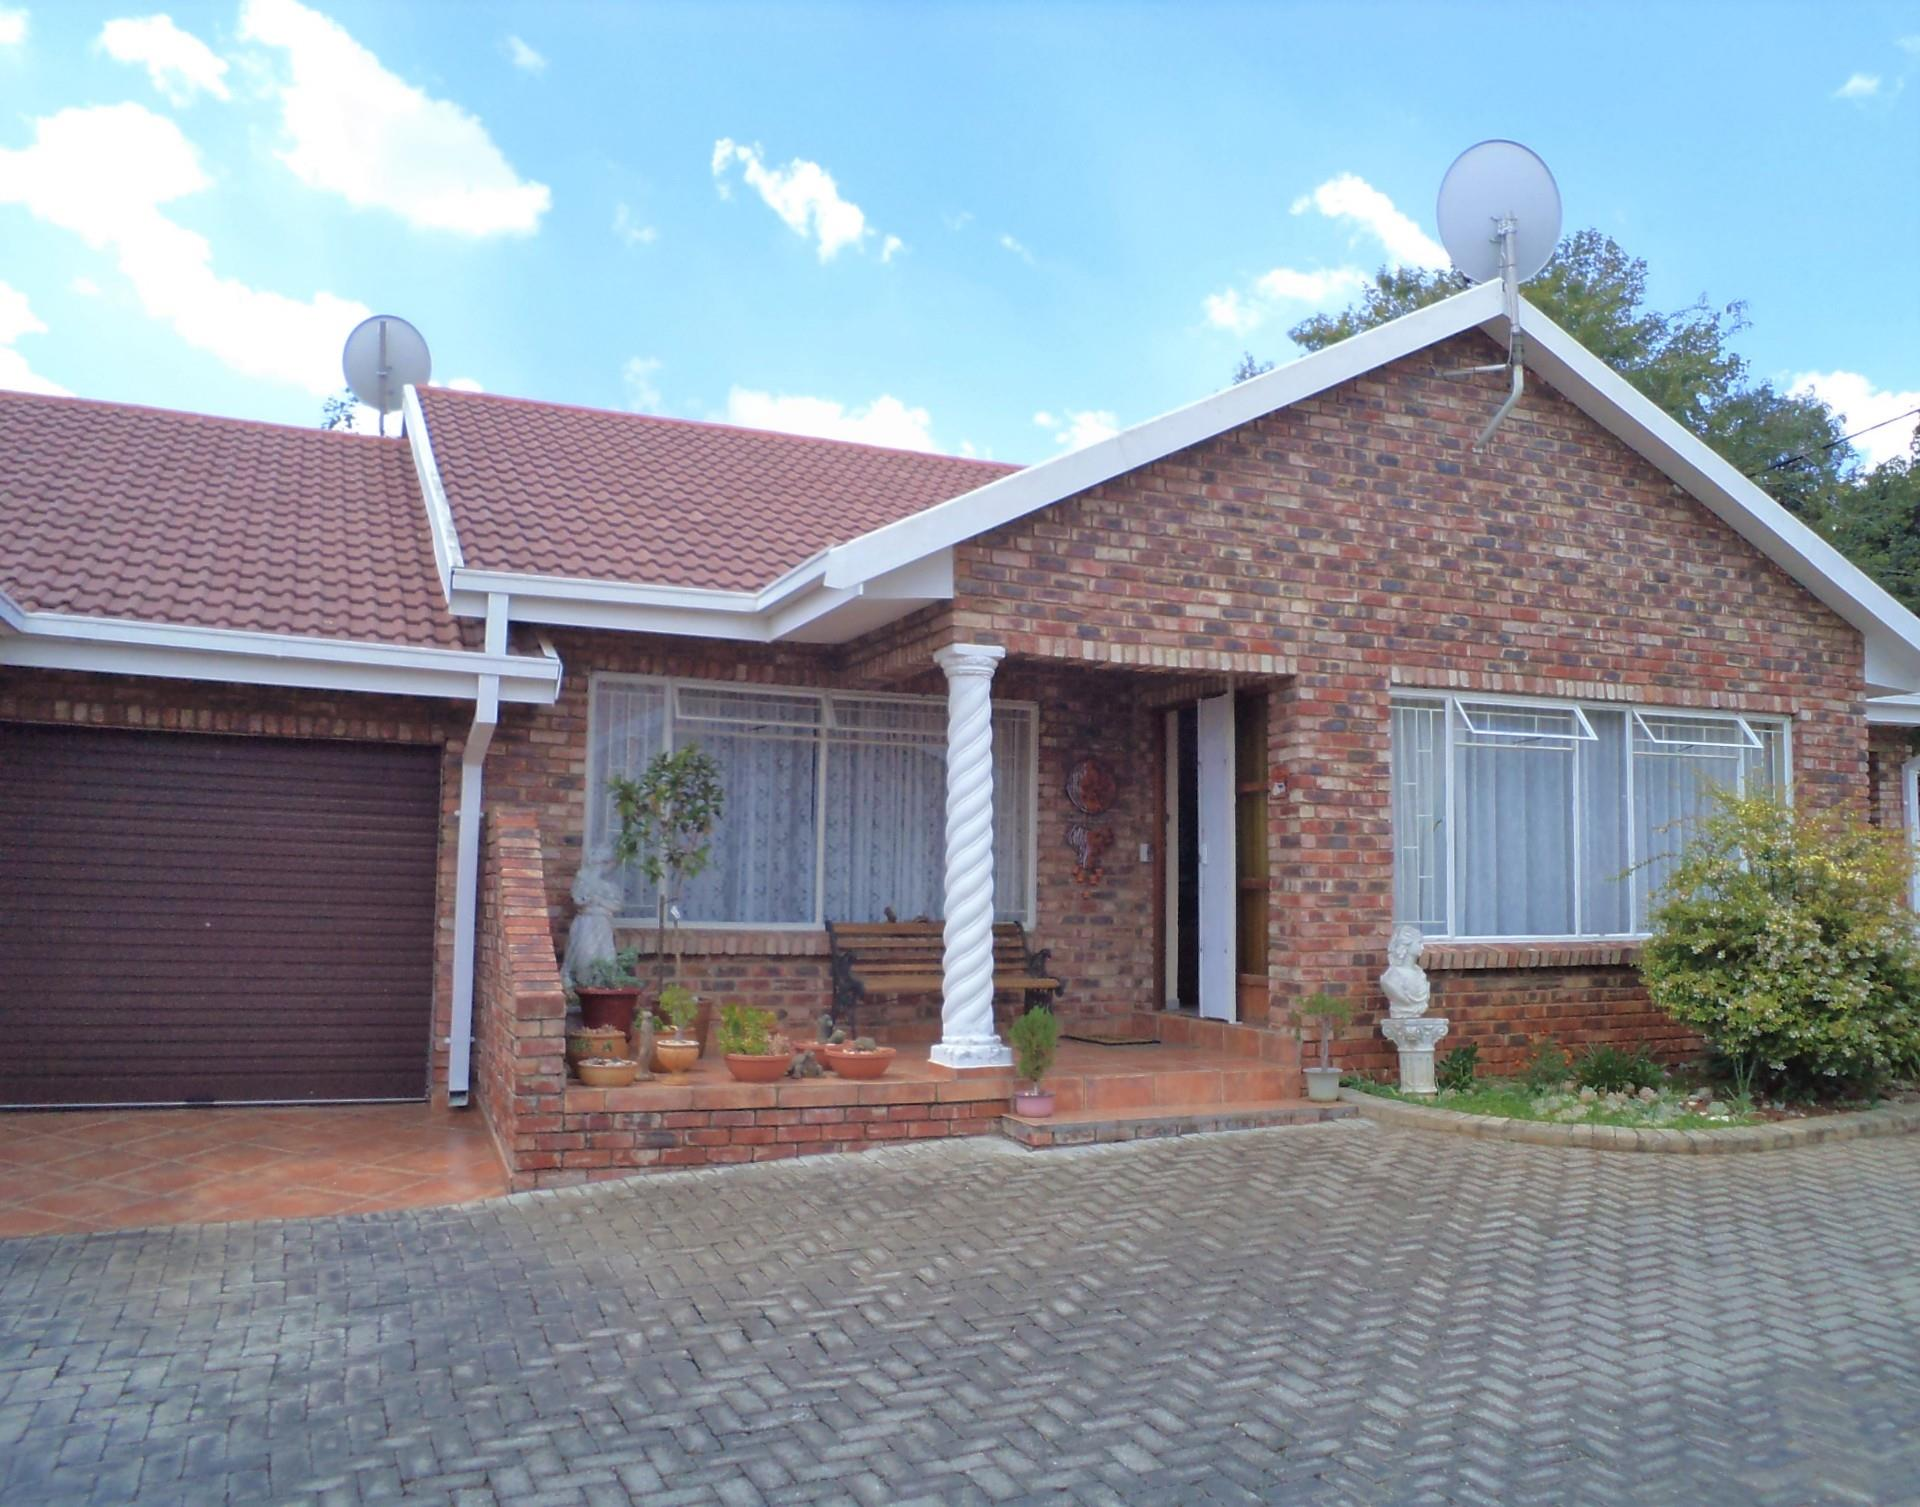 2 Bedroom House In Parys Re Max